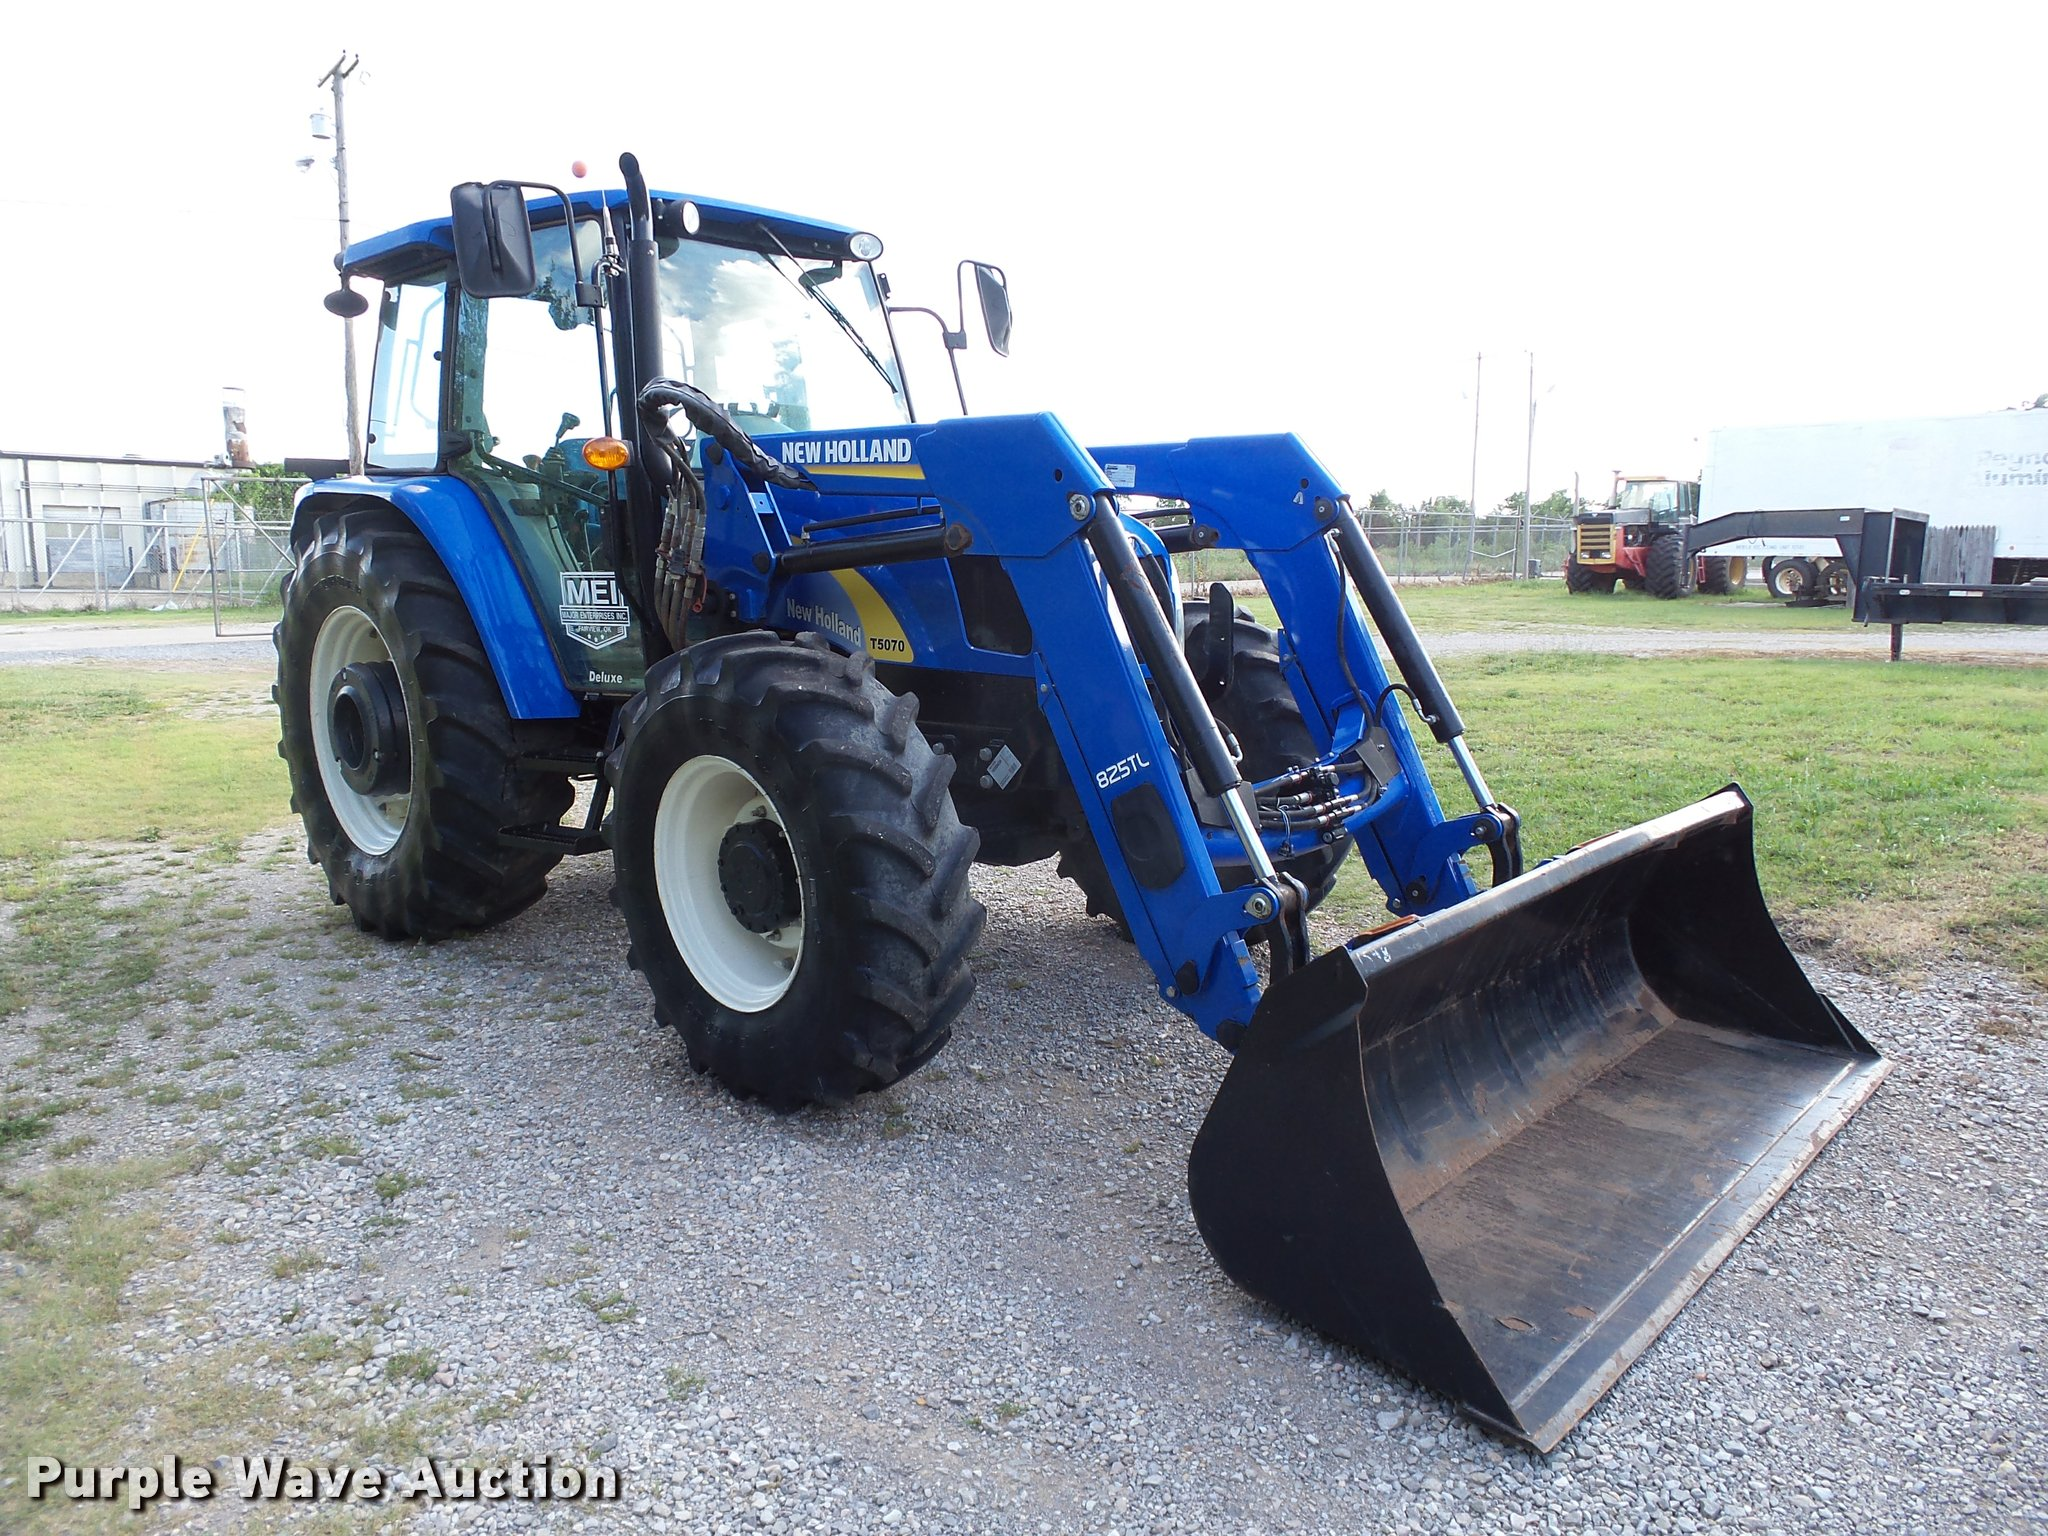 2012 New Holland T5070 MFWD tractor | Item DB4746 | SOLD! Ju